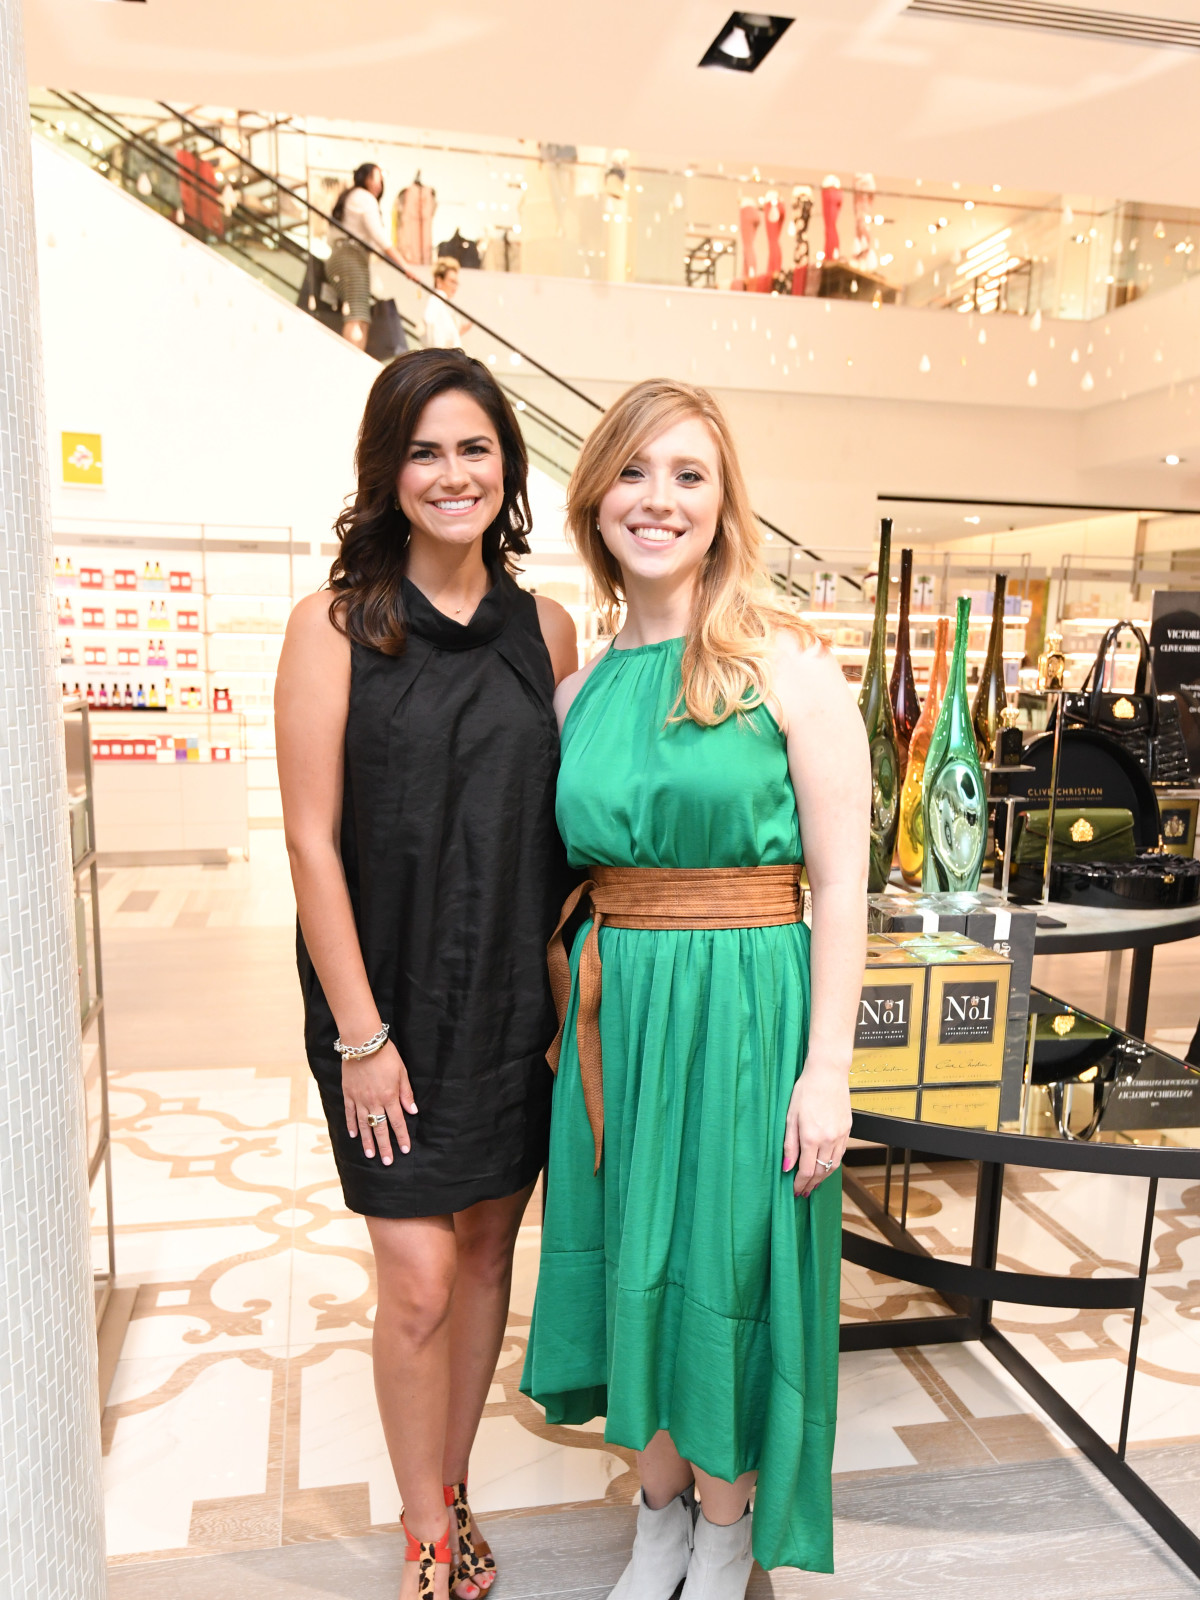 Heart of Fashion, Clive Christian Event, 6/16 Allison George, Kalyn Oden